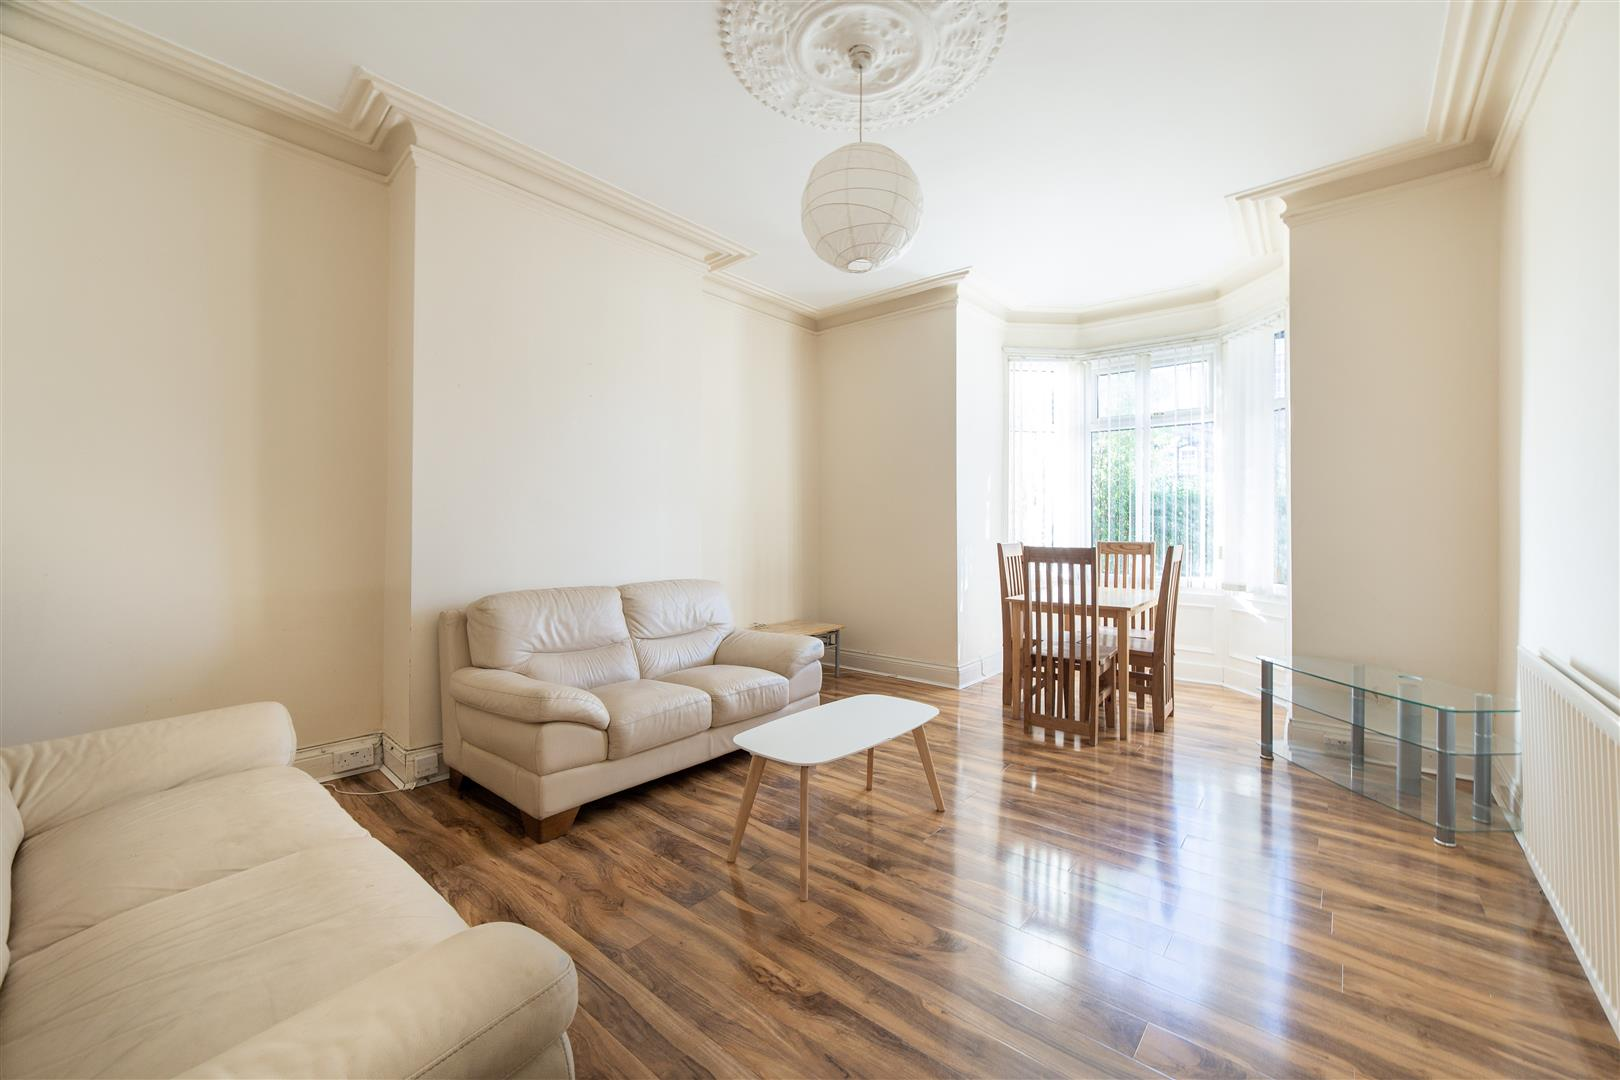 4 bed terraced house to rent in Chillingham Road, Newcastle Upon Tyne, NE6